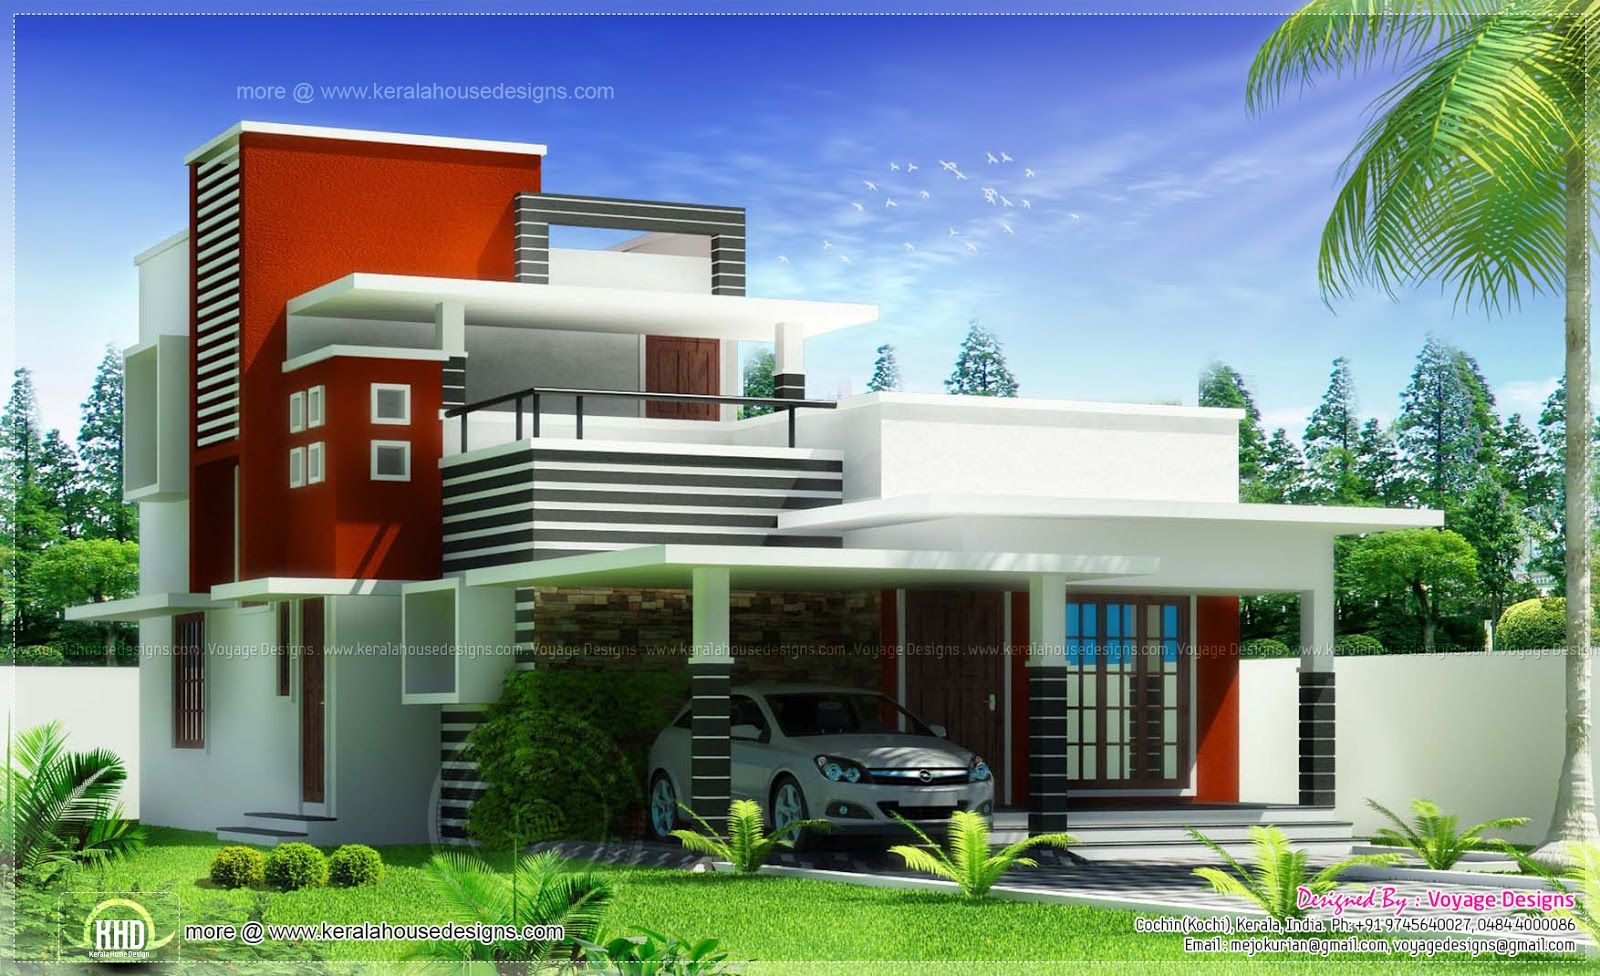 Kerala house designs architecture pinterest kerala for House architecture styles in india